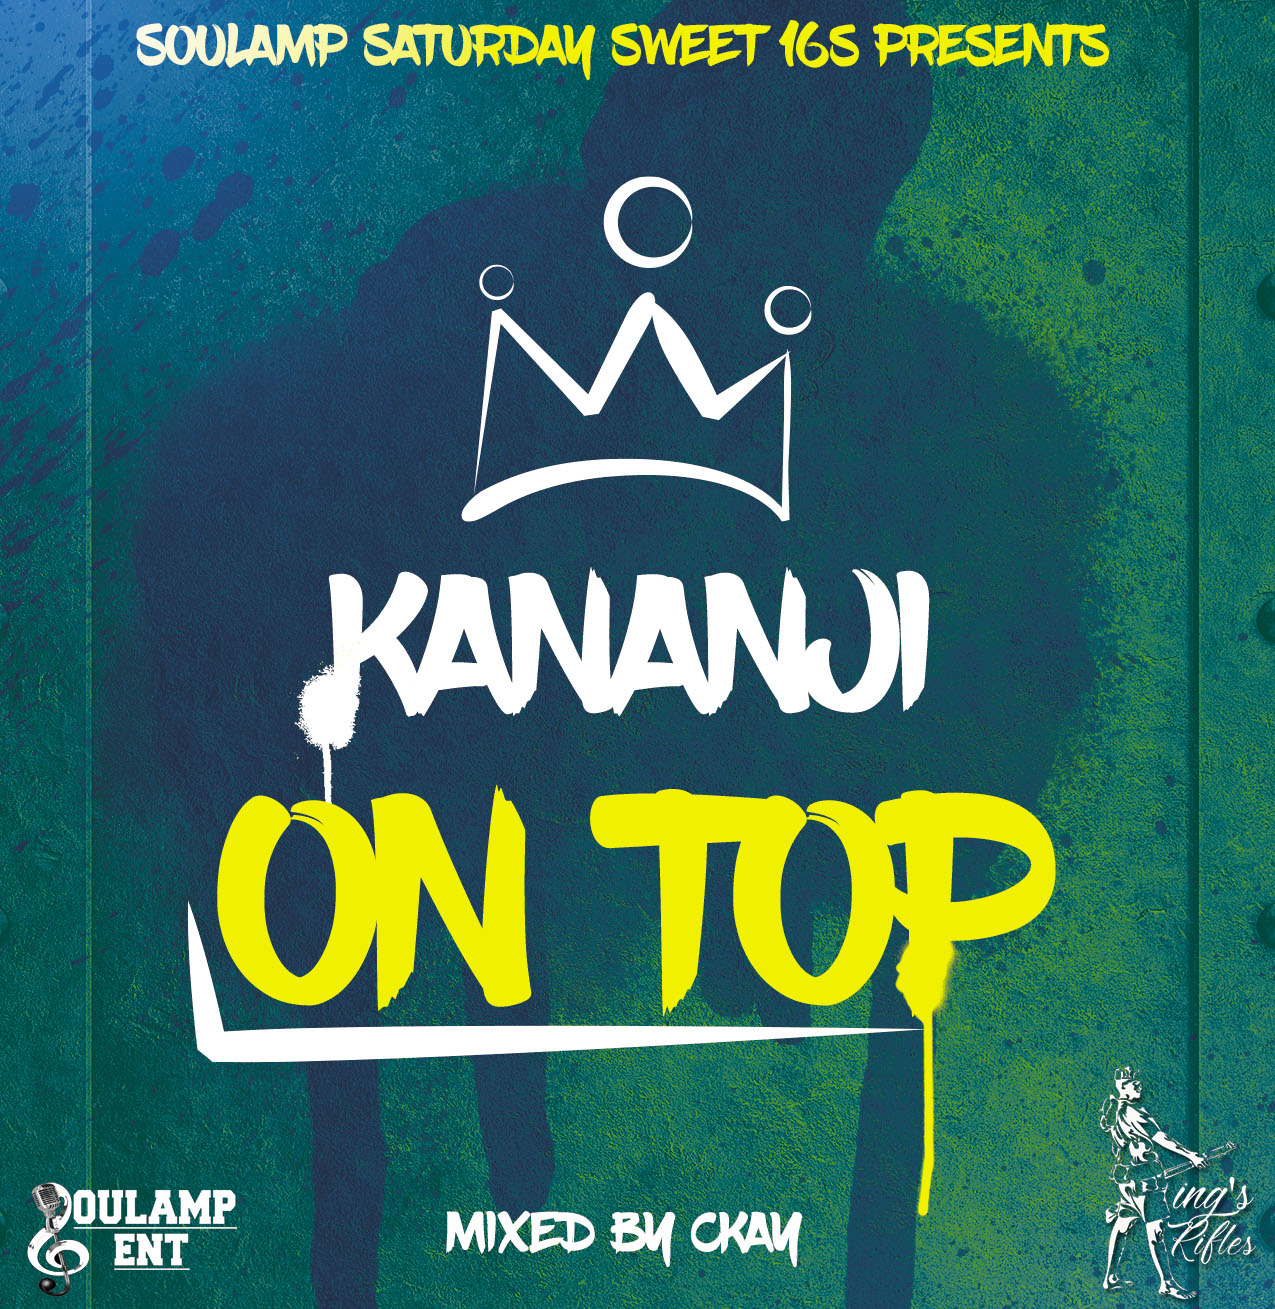 Kananji - On Top